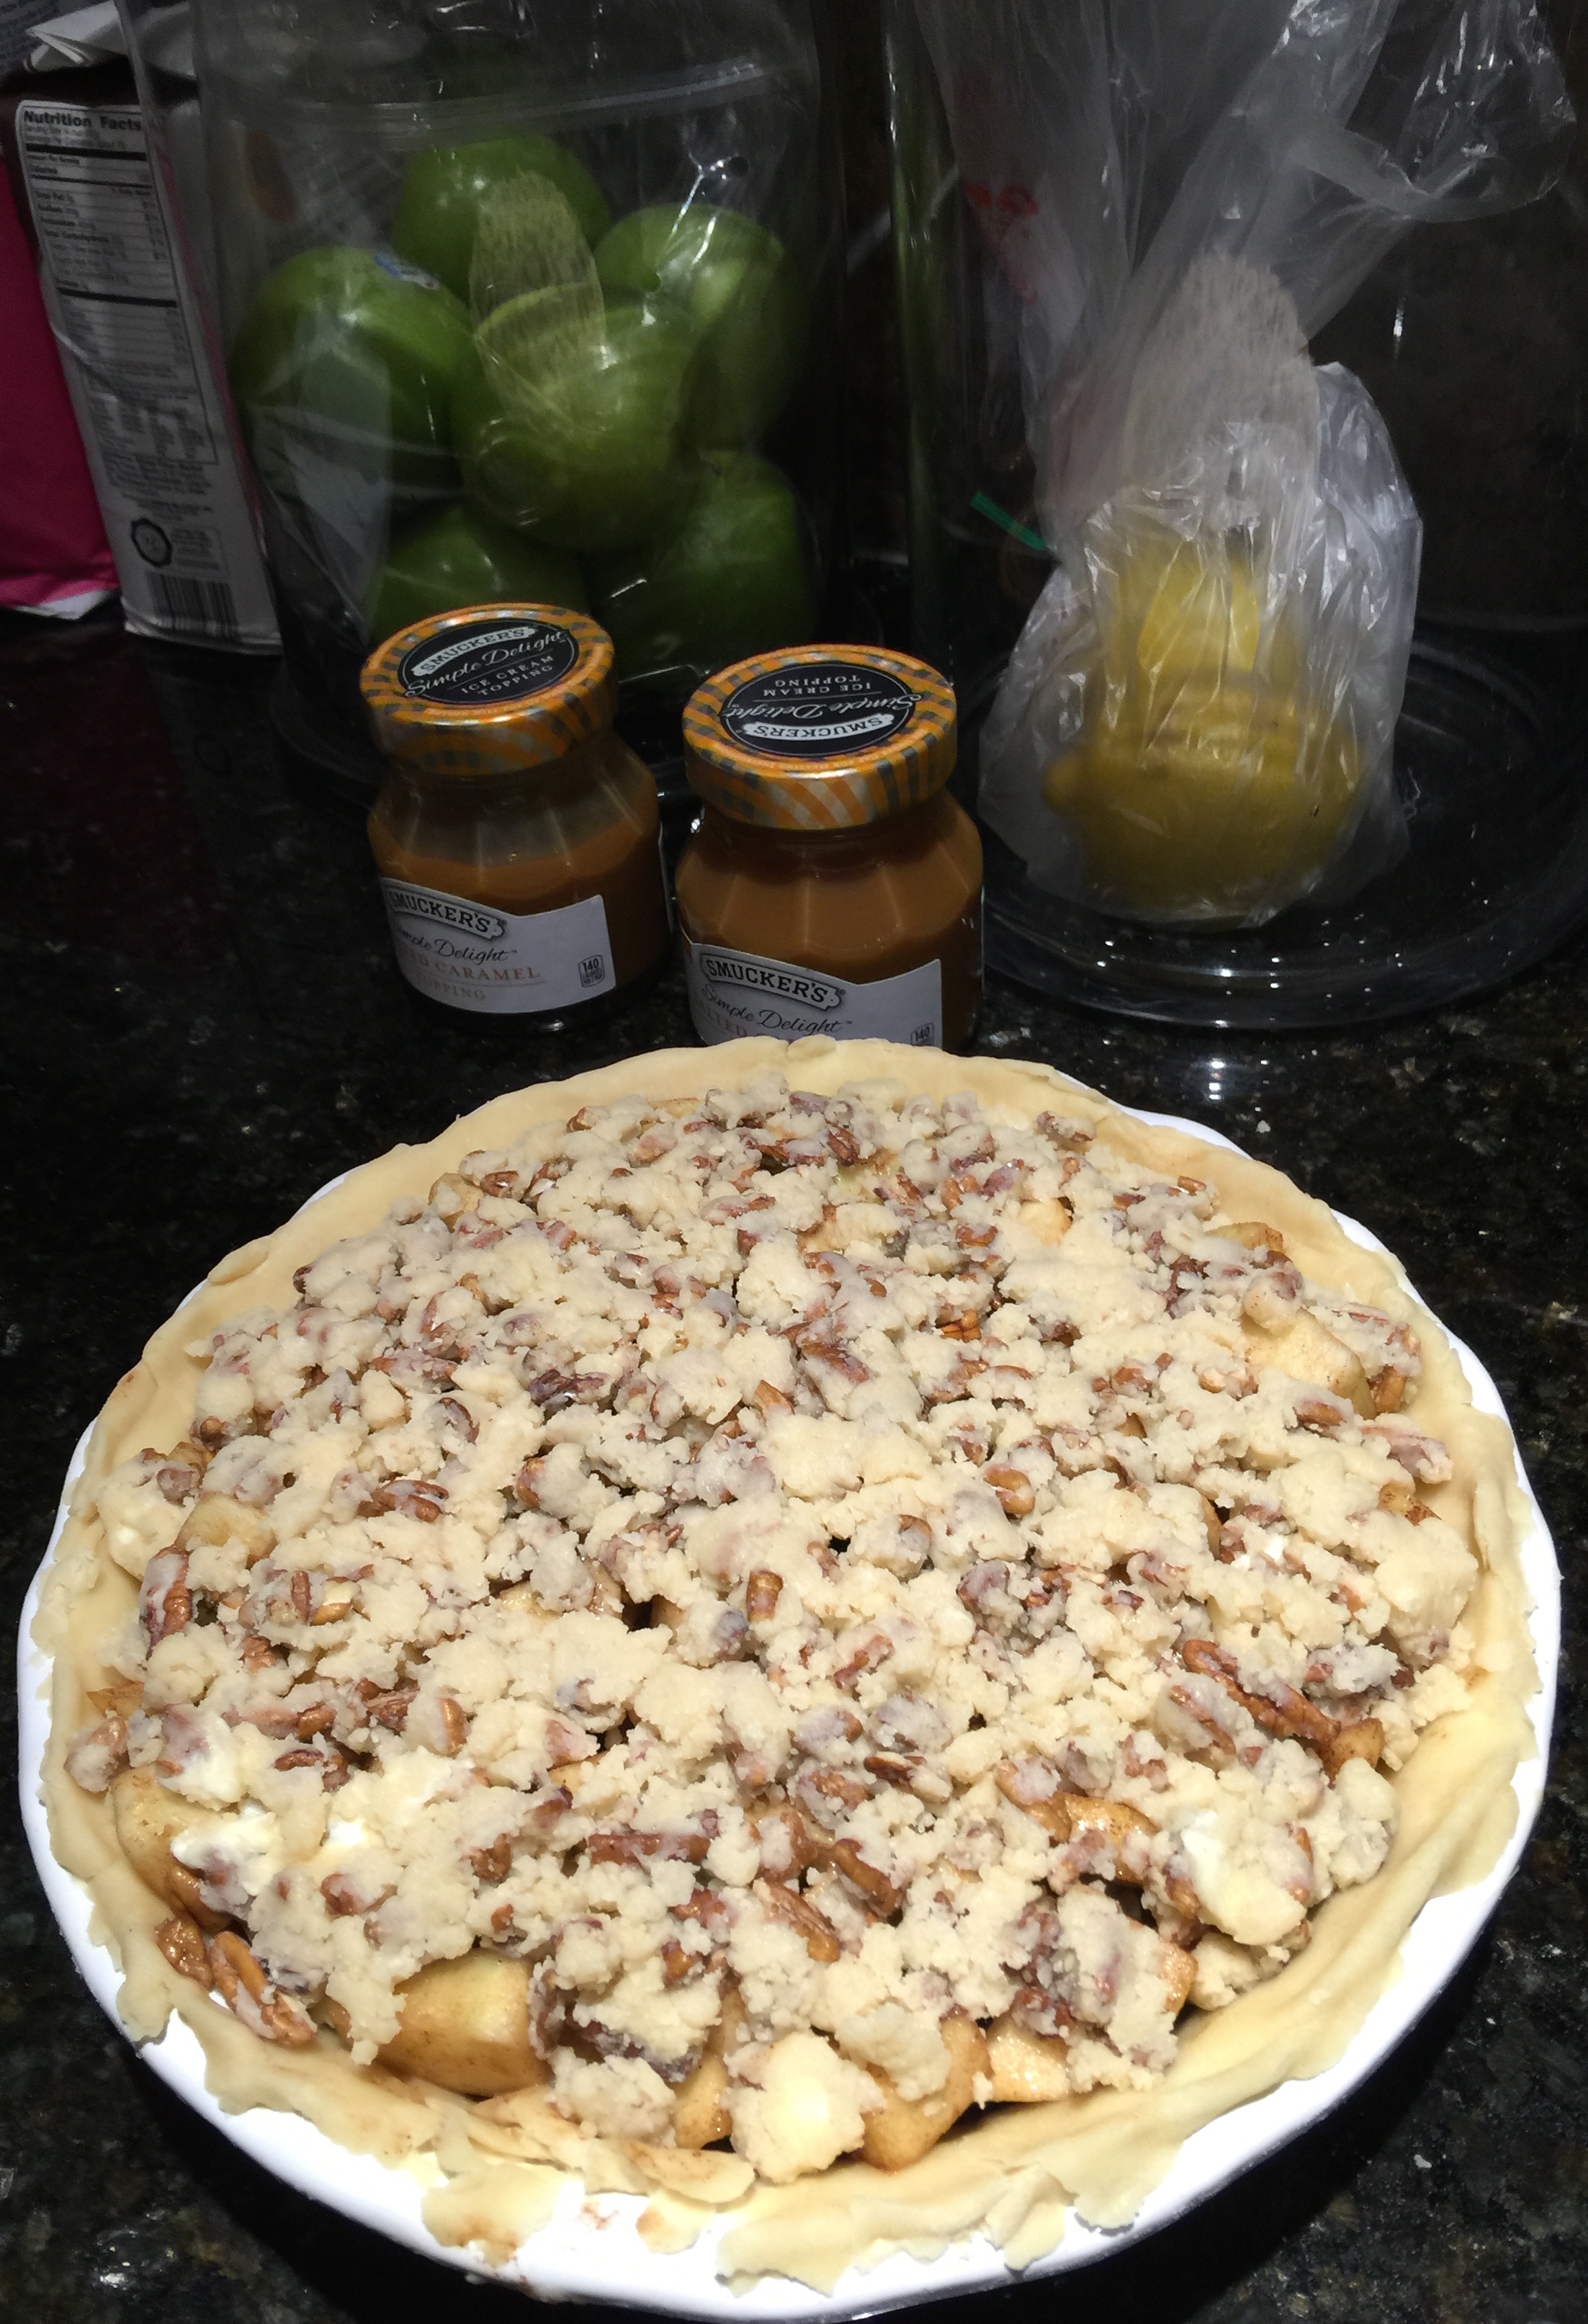 Topping Put On Caramel Pecan Apple Pie Ready for Oven